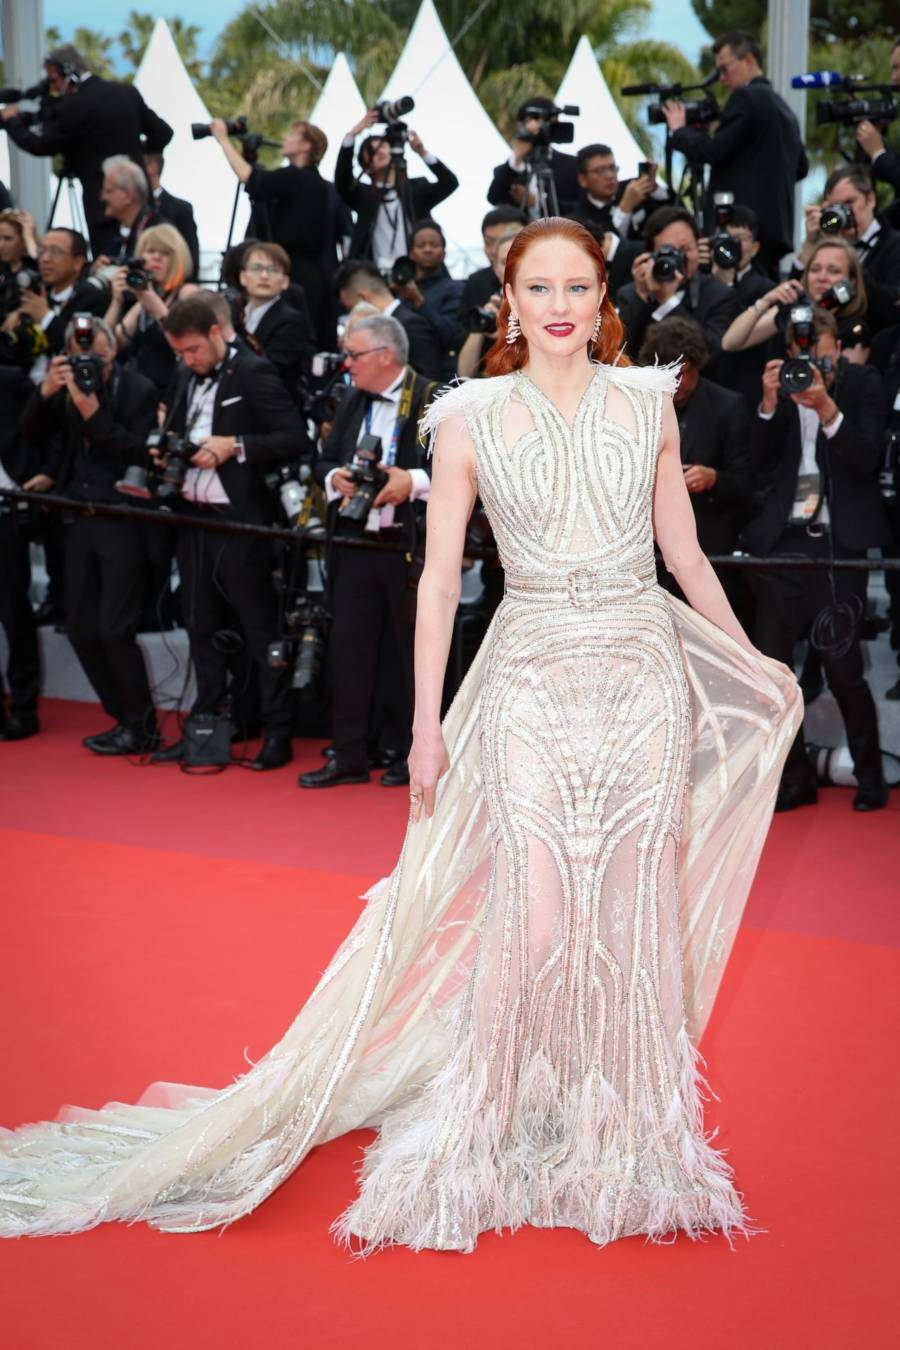 Barbara Meier At 2019 Cannes Film Festival Opening Ceremony